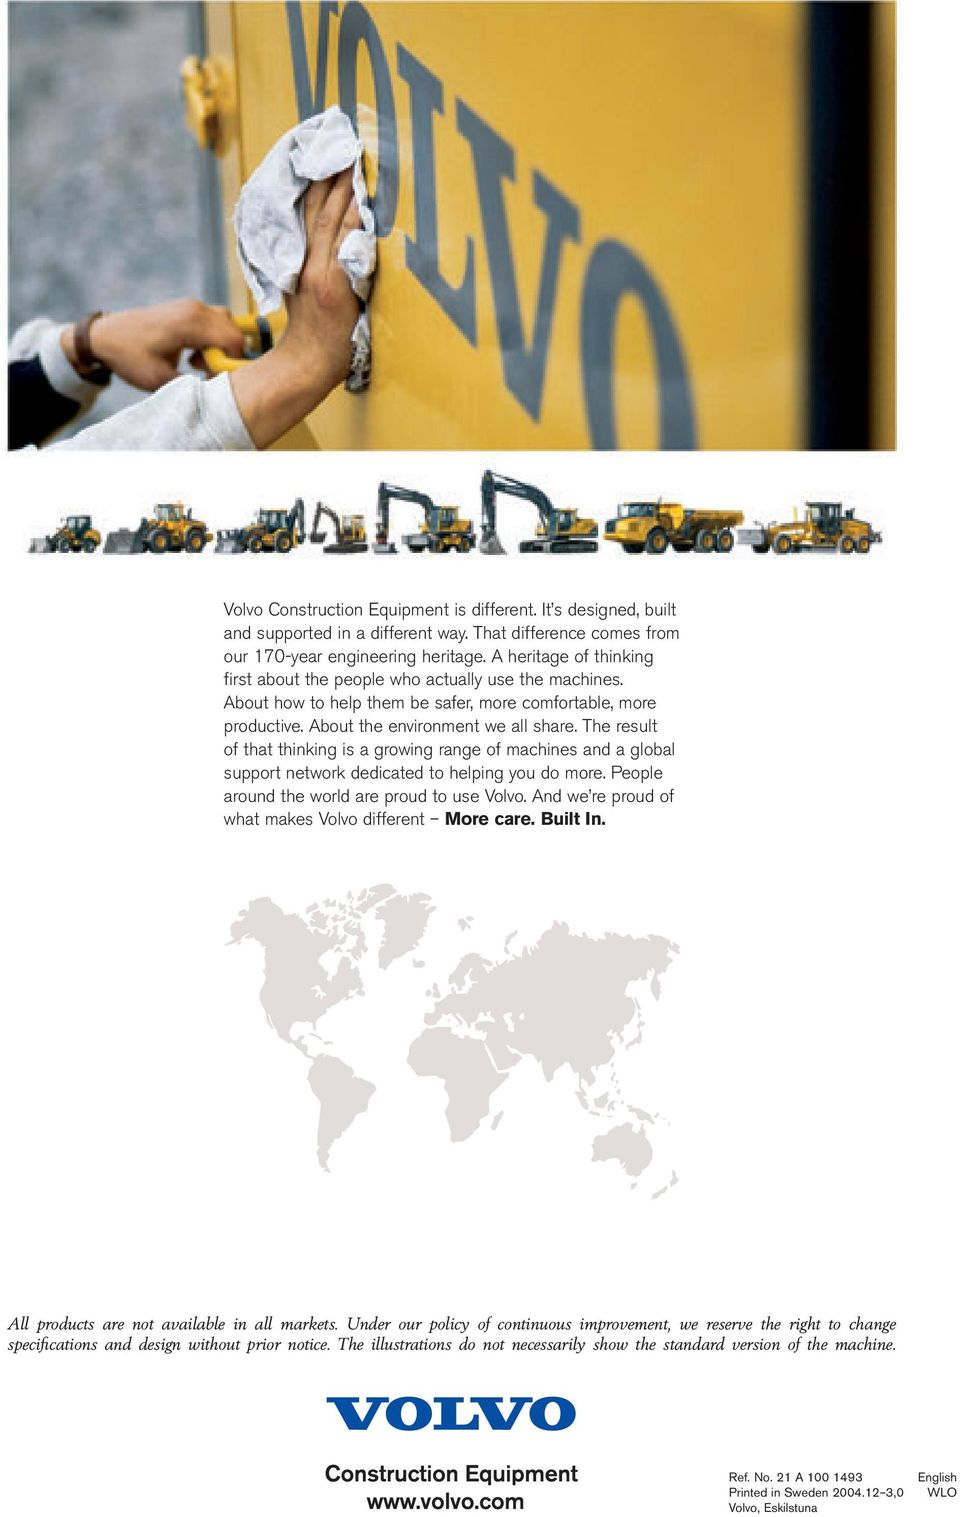 The result of that thinking is a growing range of machines and a global support network dedicated to helping you do more. People around the world are proud to use Volvo.